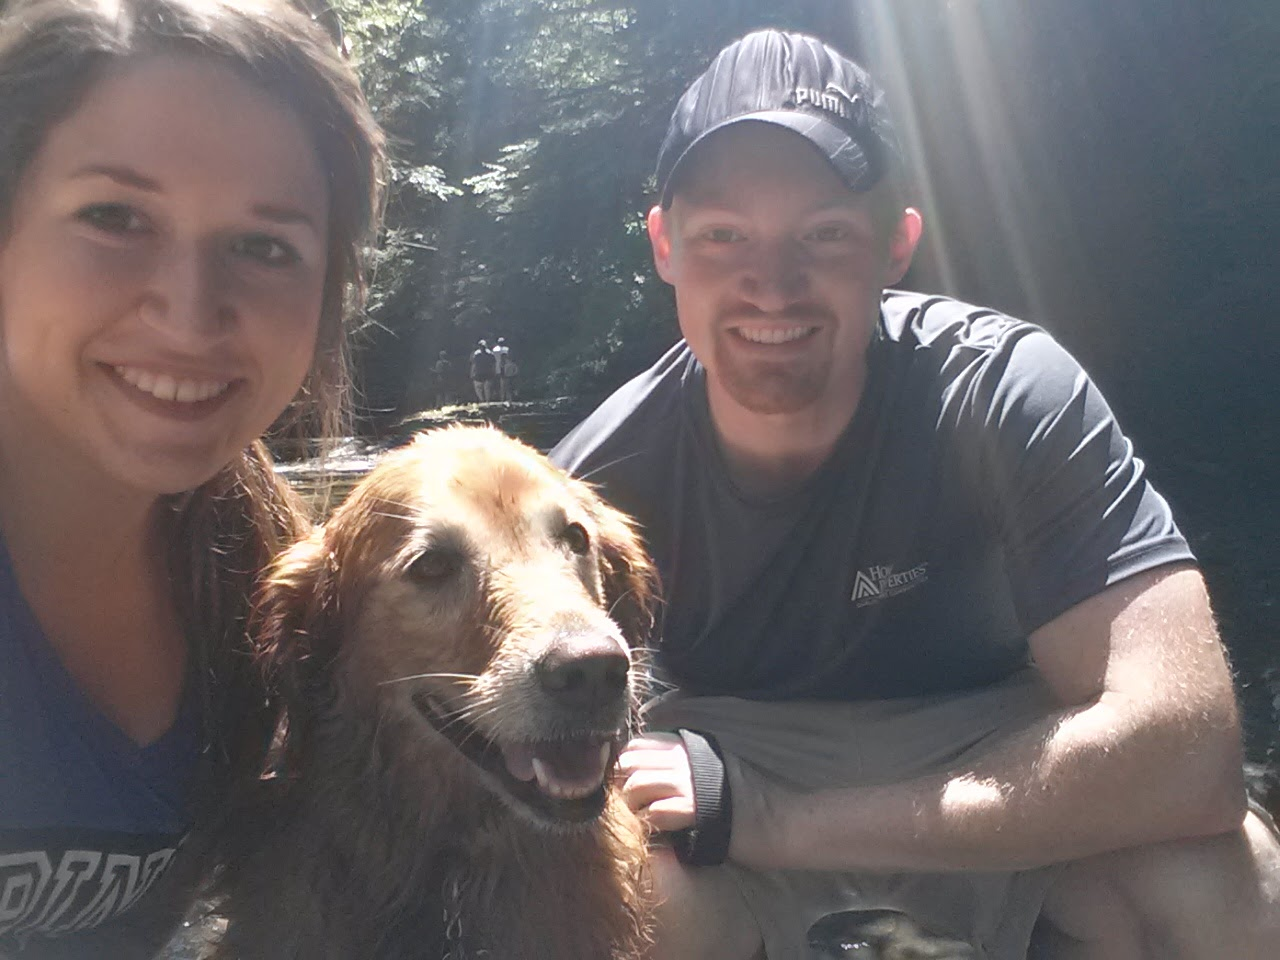 Me, Lily, my dog, and Brandon, my boyfriend, on our first hiking date in 2014.